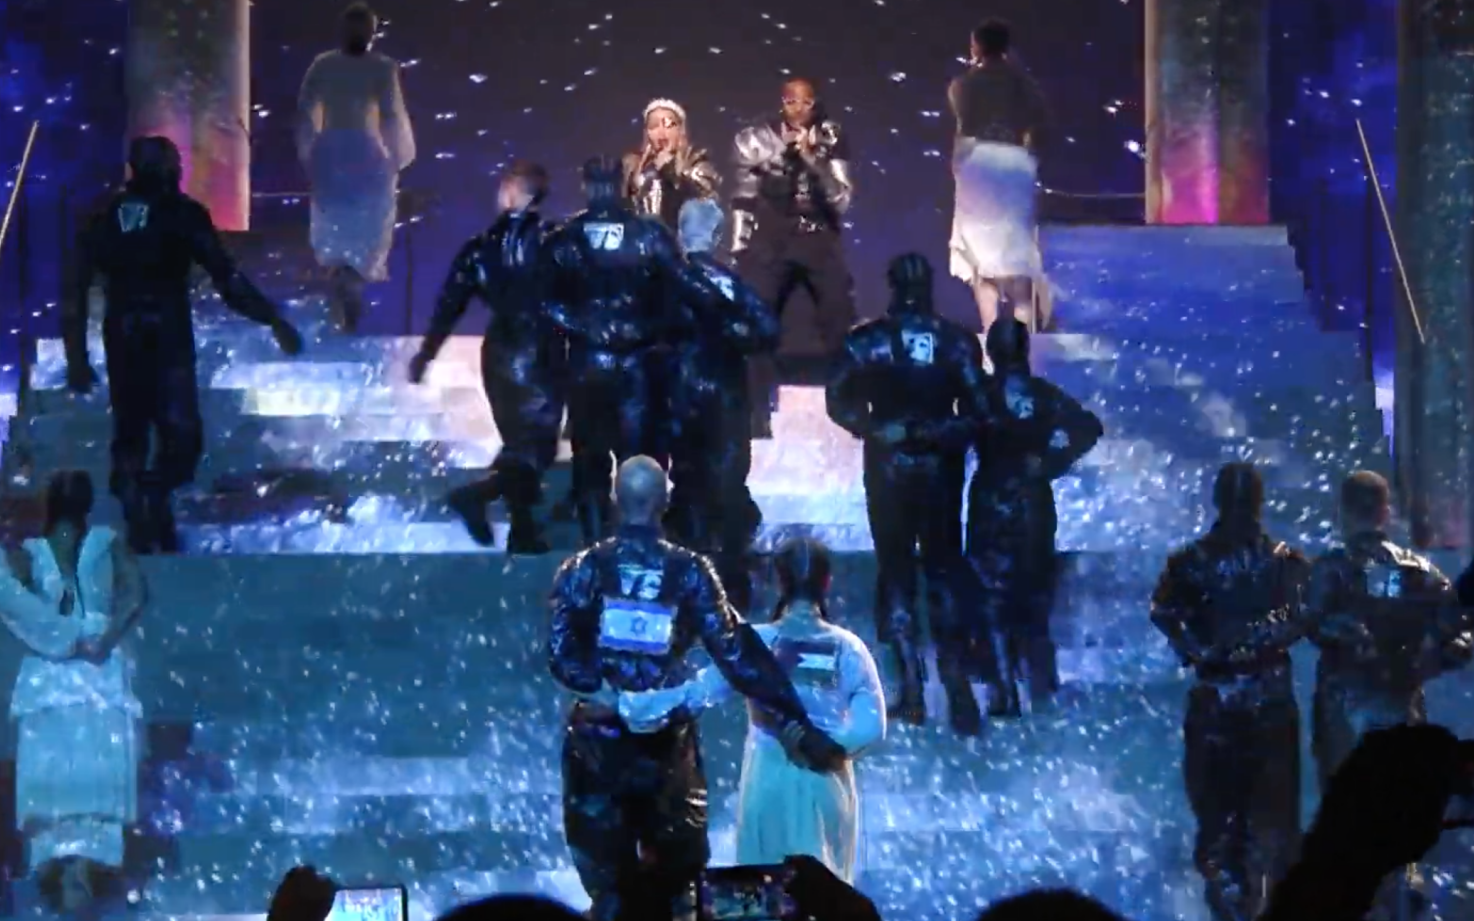 Madonna - surprise! - stirs controversy with Eurovision Song Contest performance